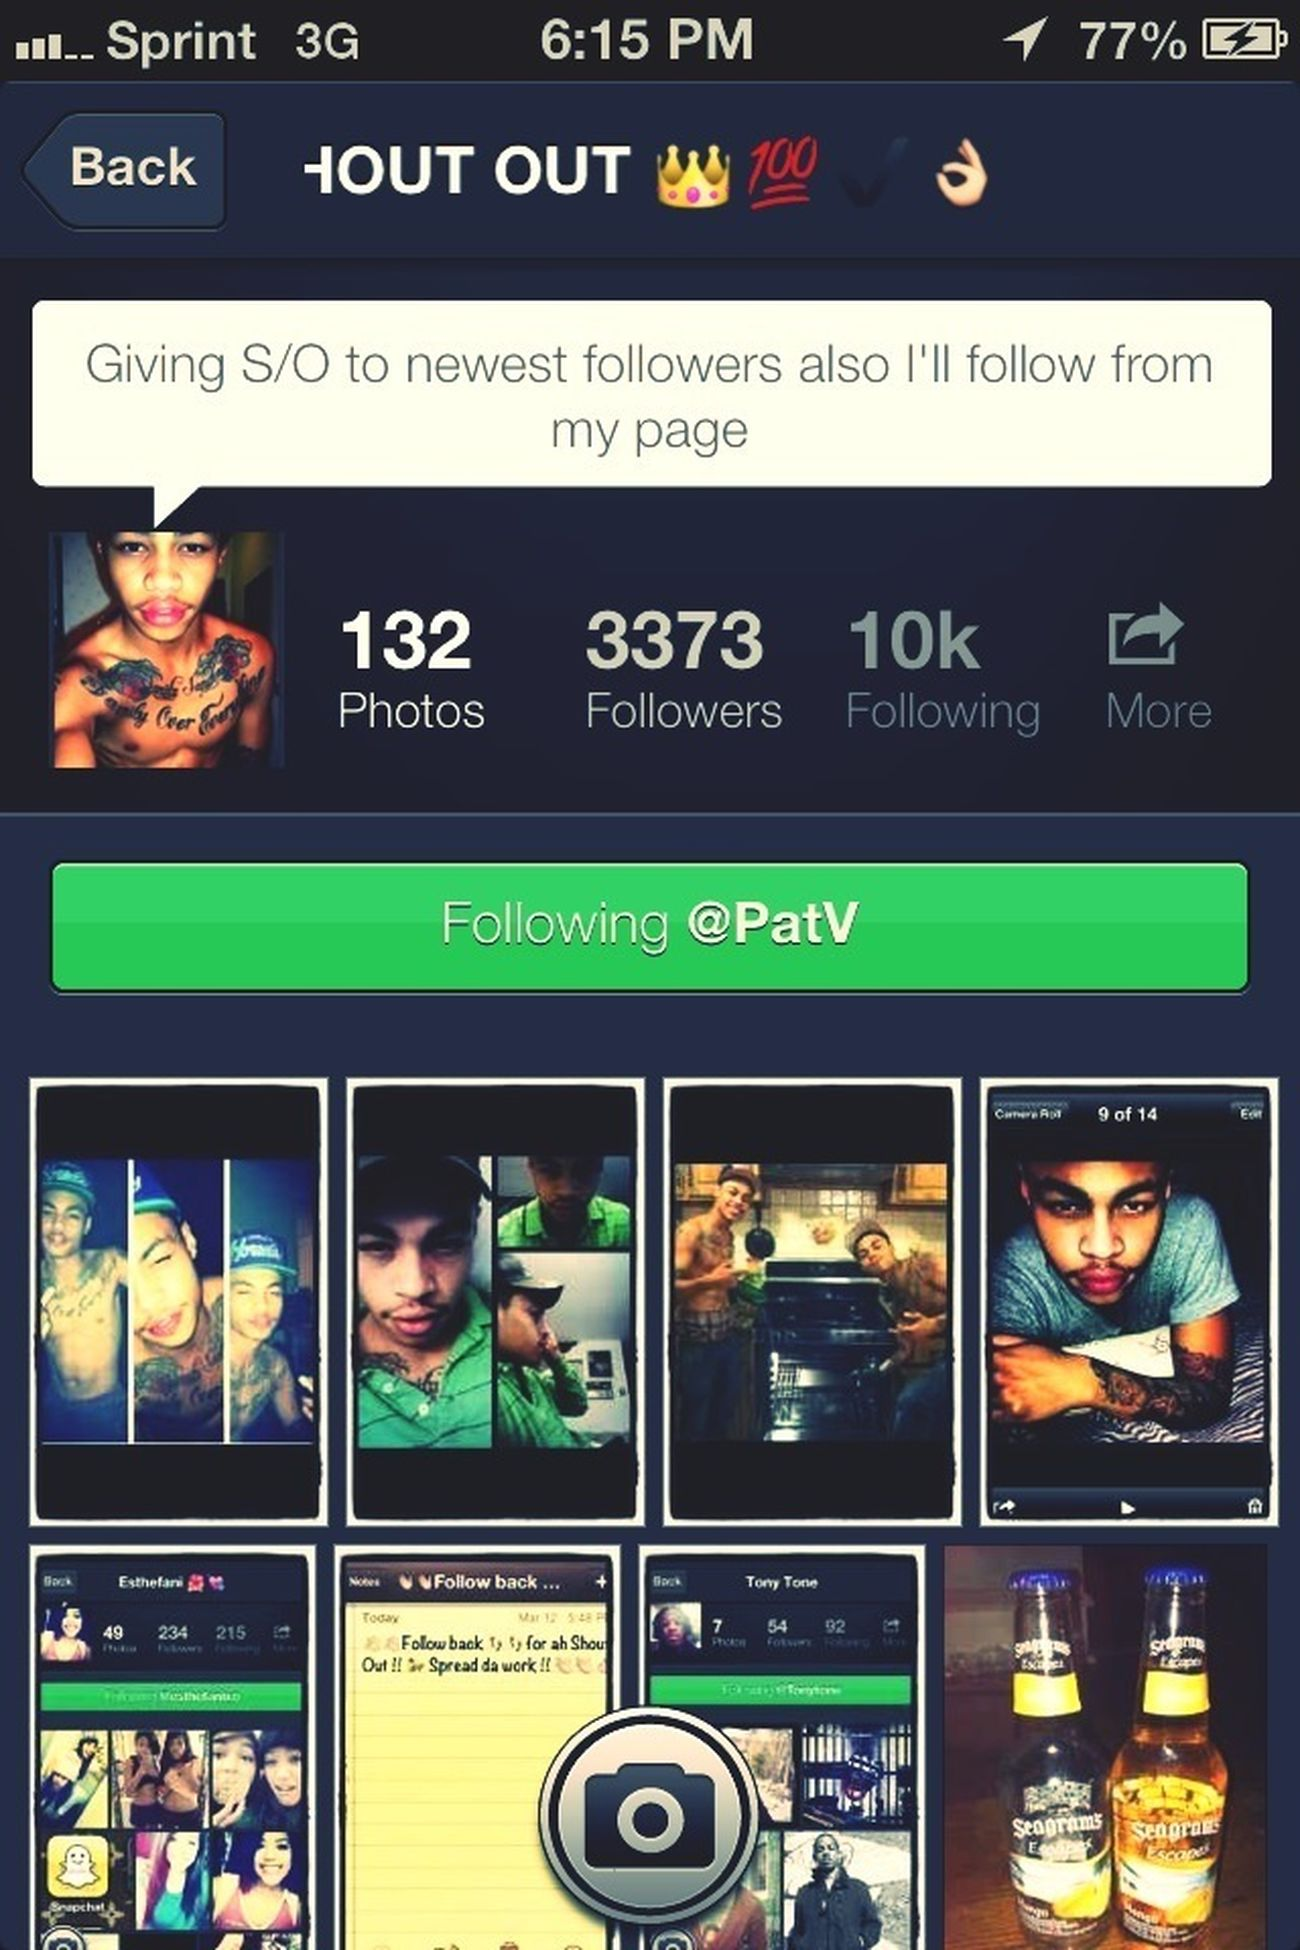 Go follow him for me ! (: